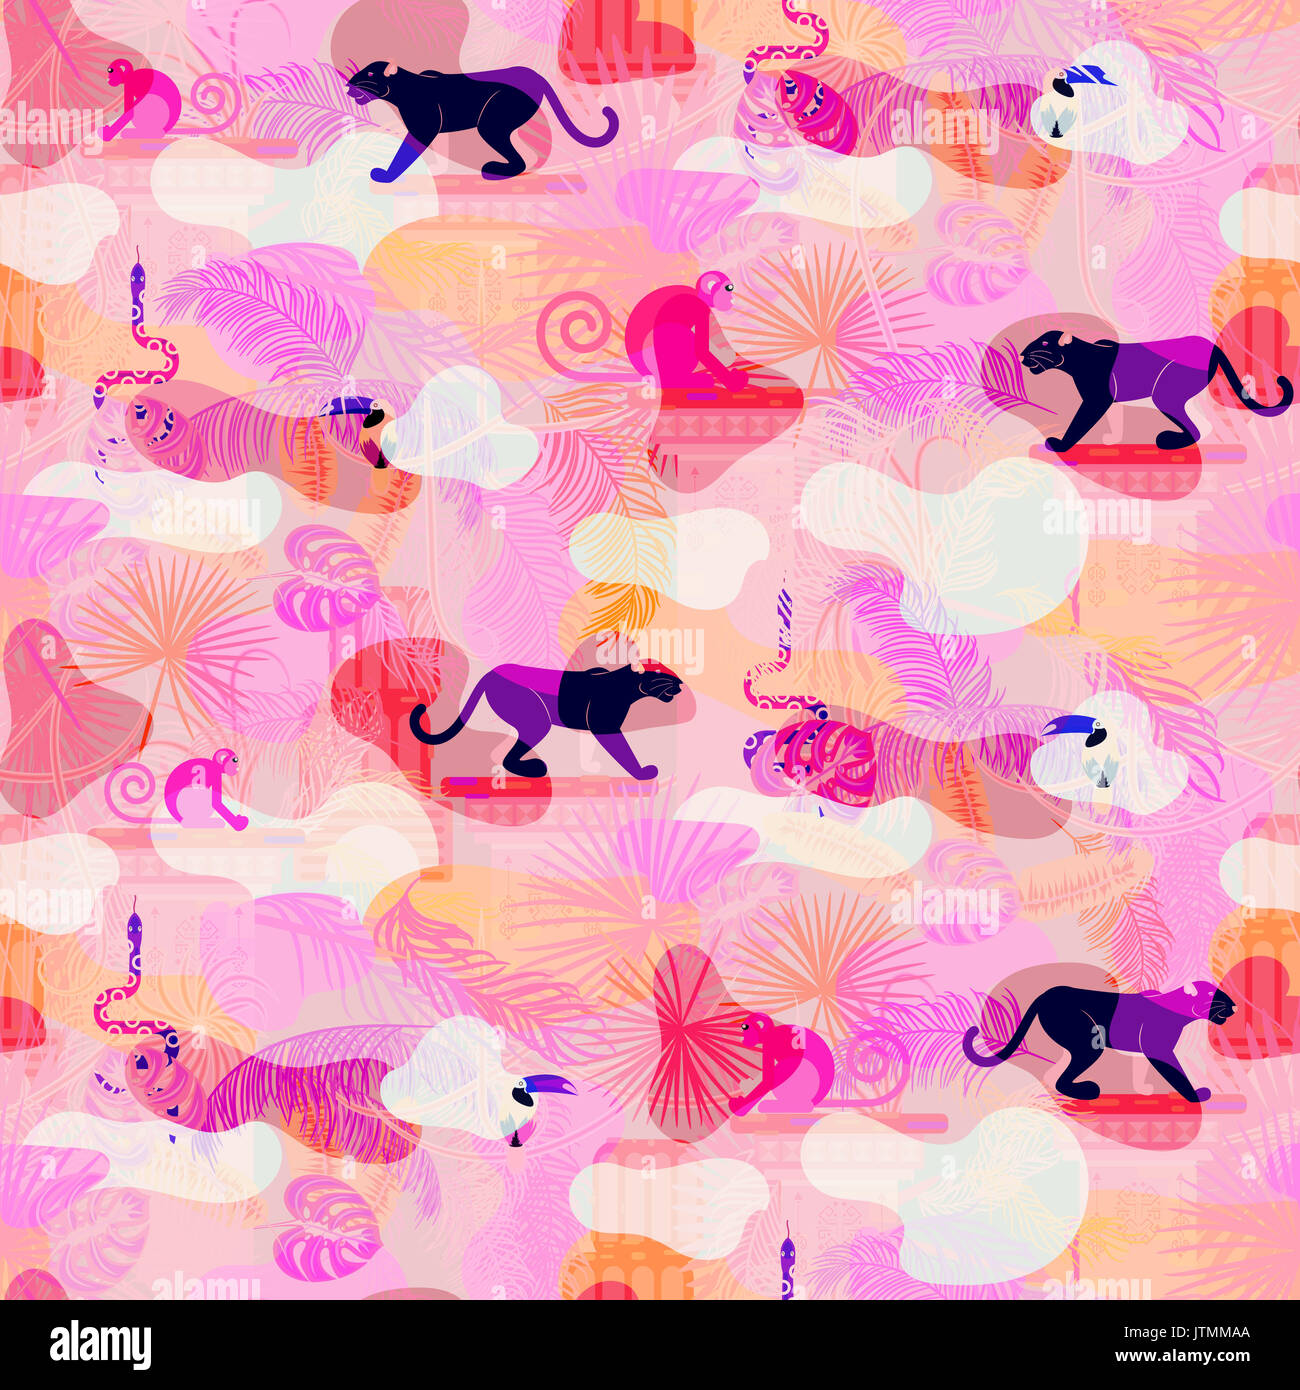 Pink eclectic rainforest wild animals and plants camo seamless pattern. Panther and monkey in the jungles. - Stock Image